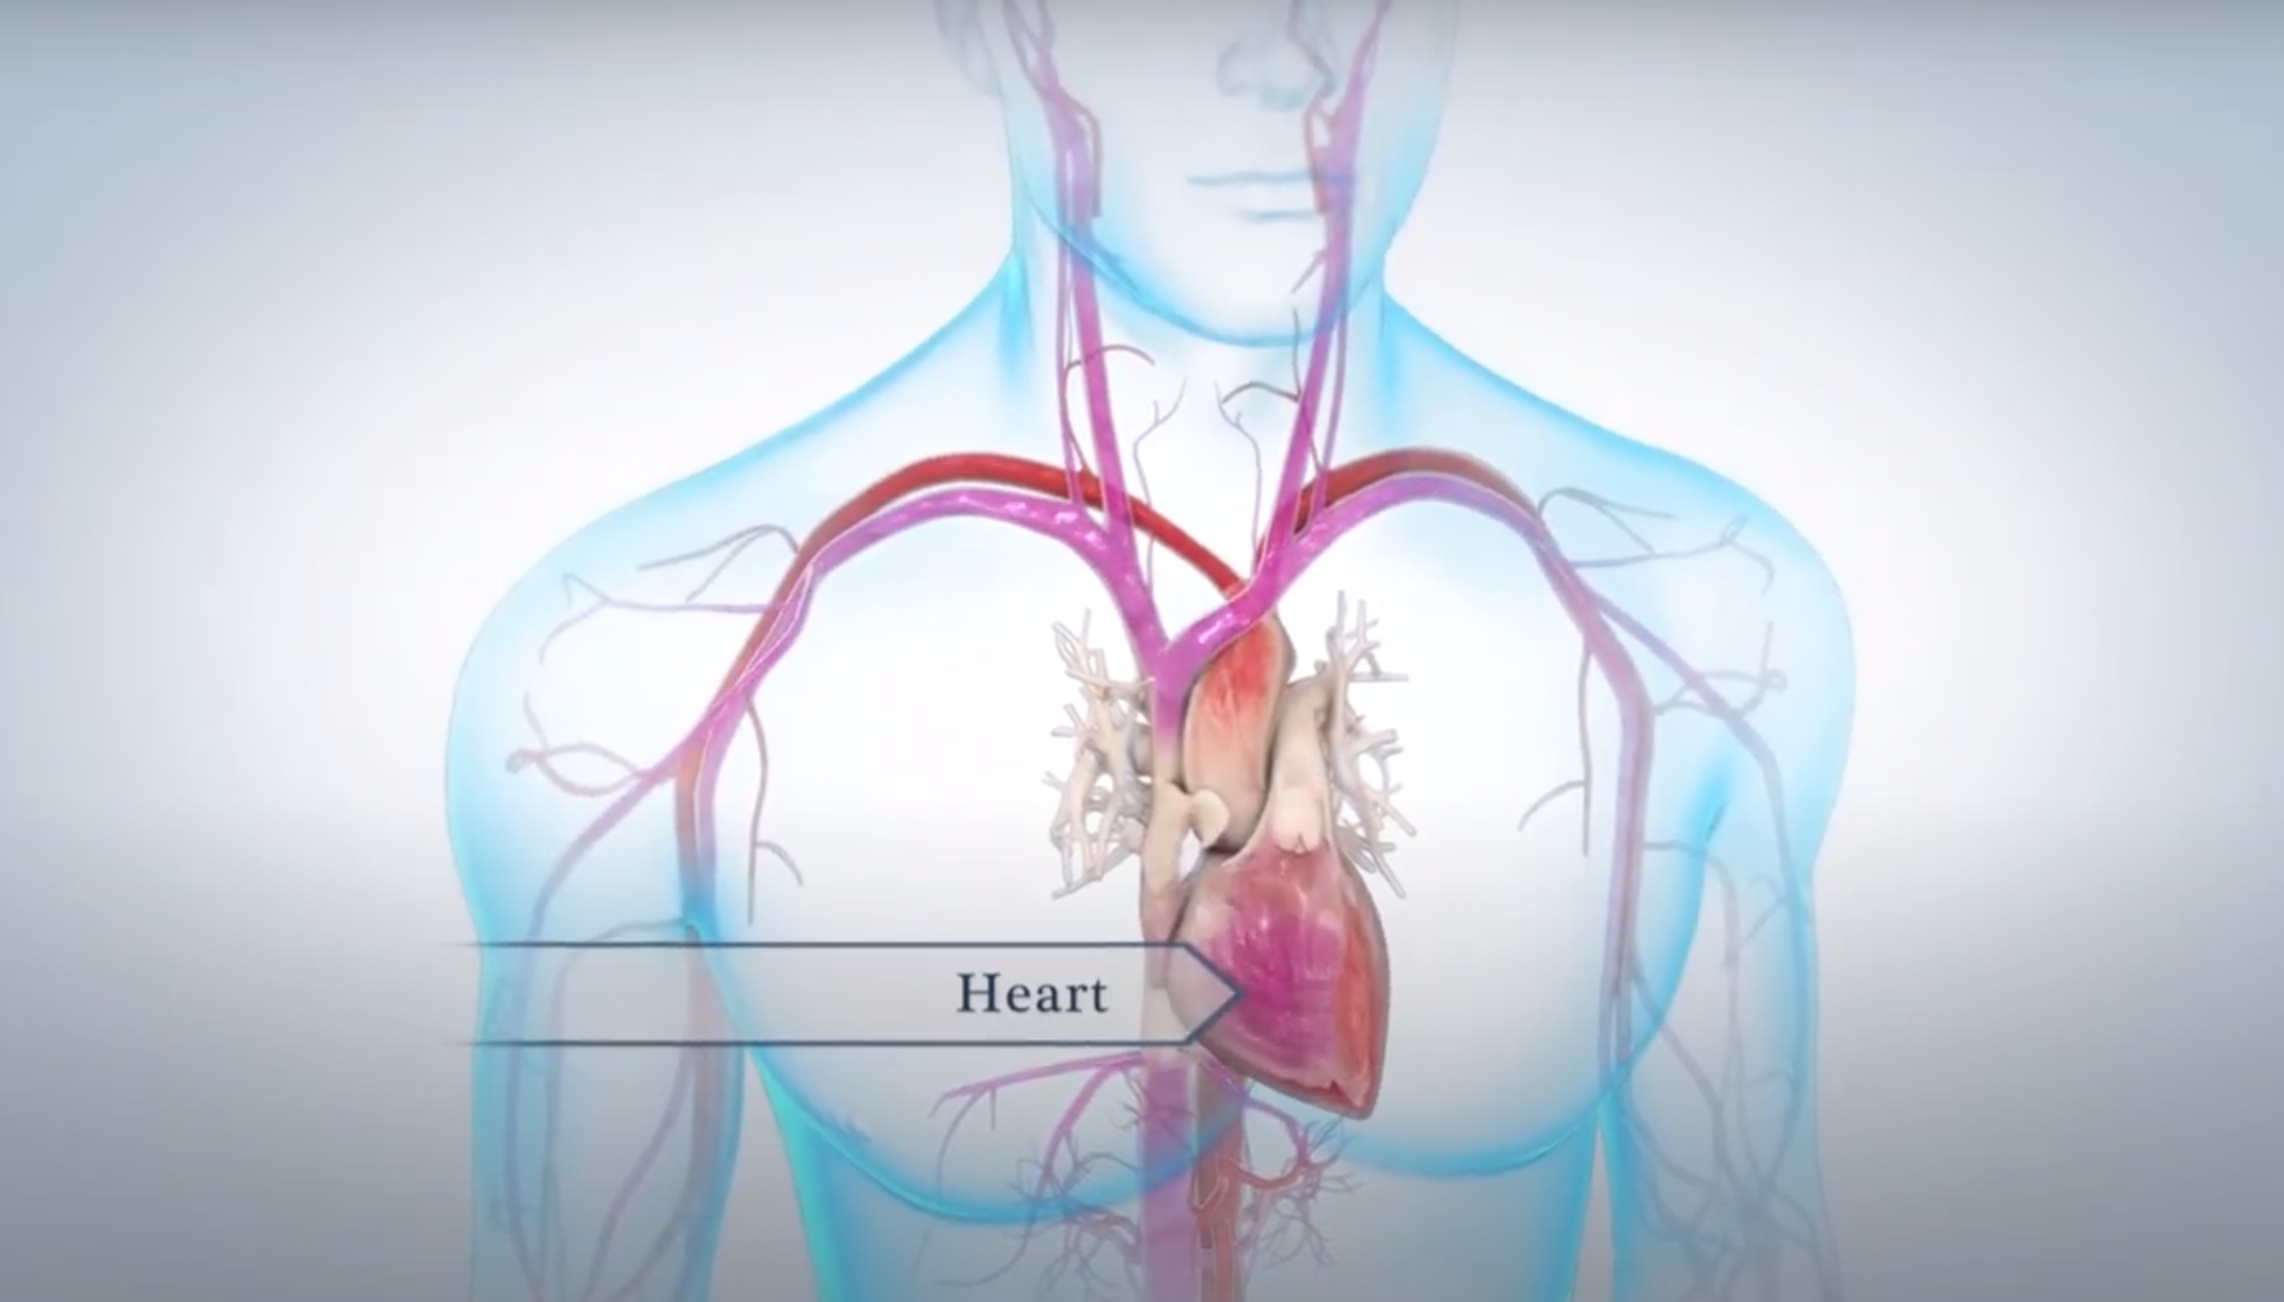 Animated model of the heart pumping blood throughout the body